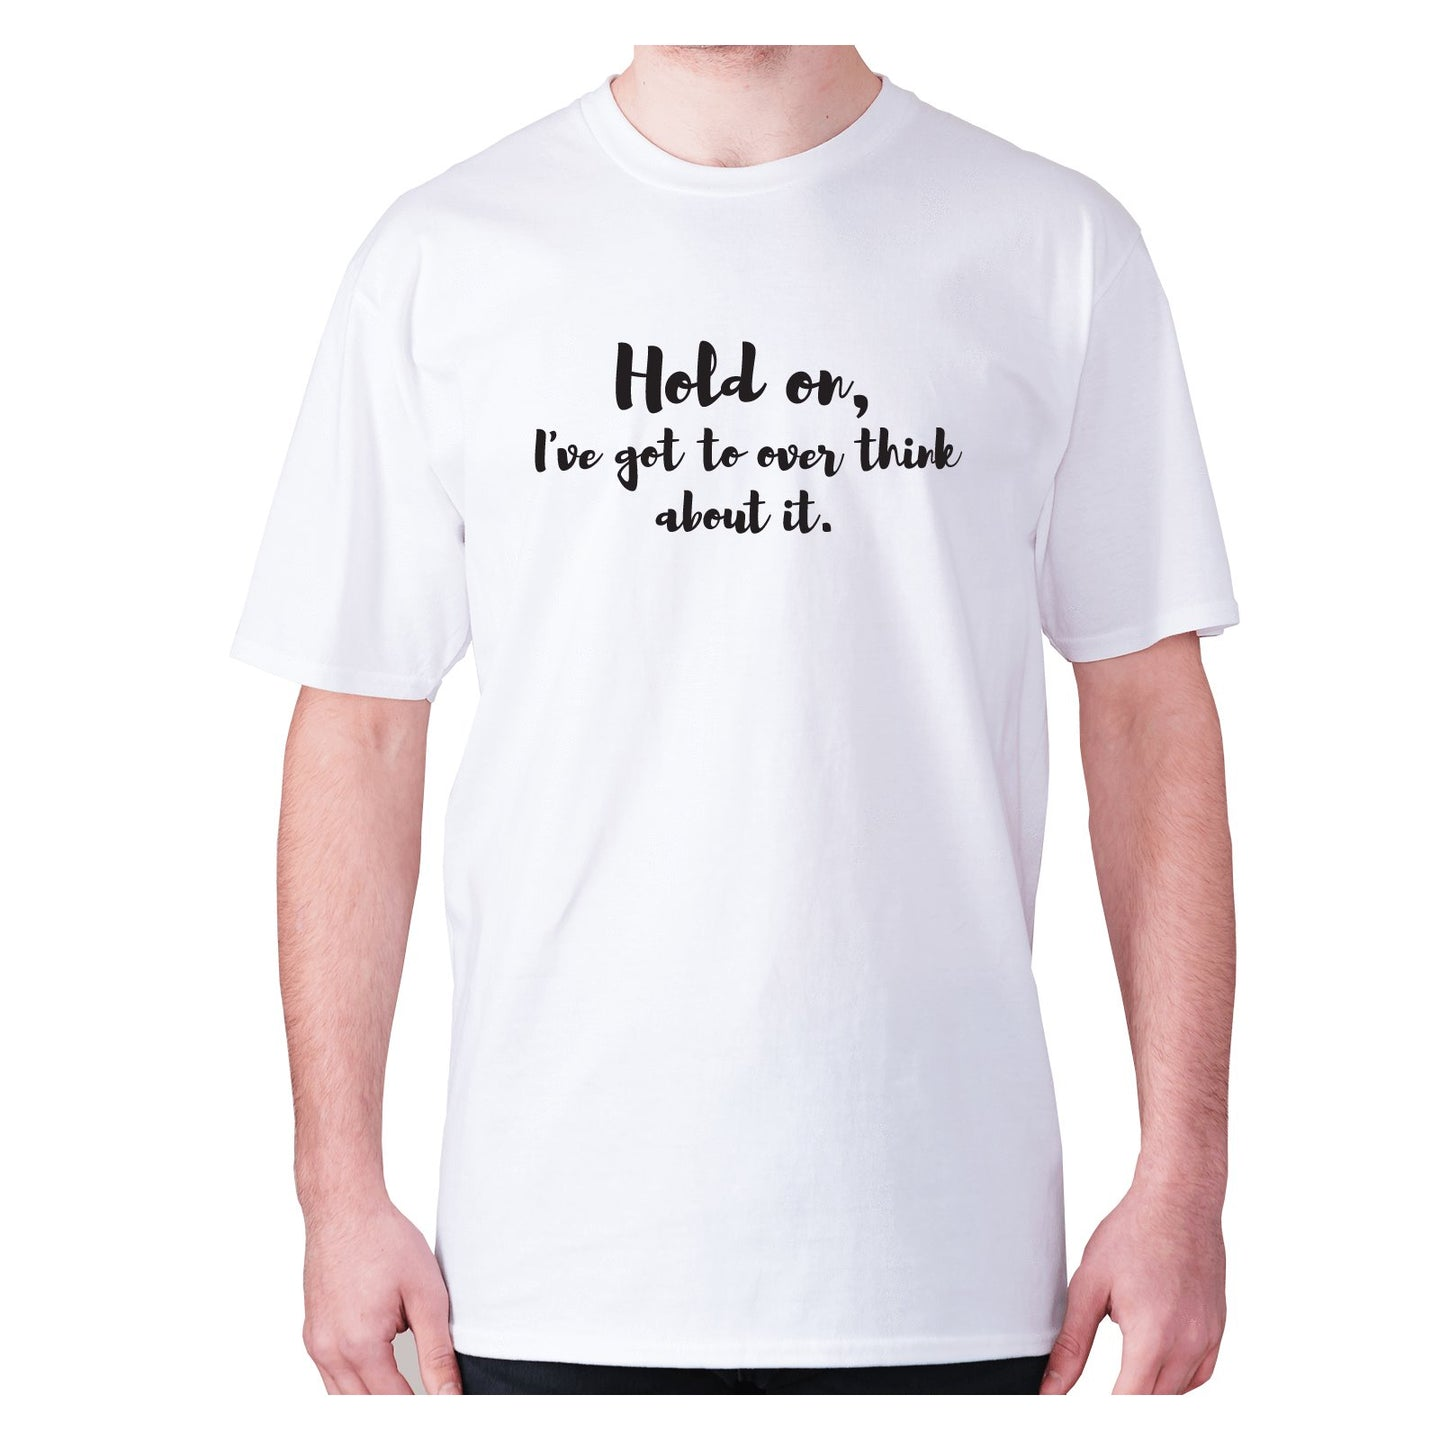 Hold on, I've got to over think about it - men's premium t-shirt - White / S - Graphic Gear